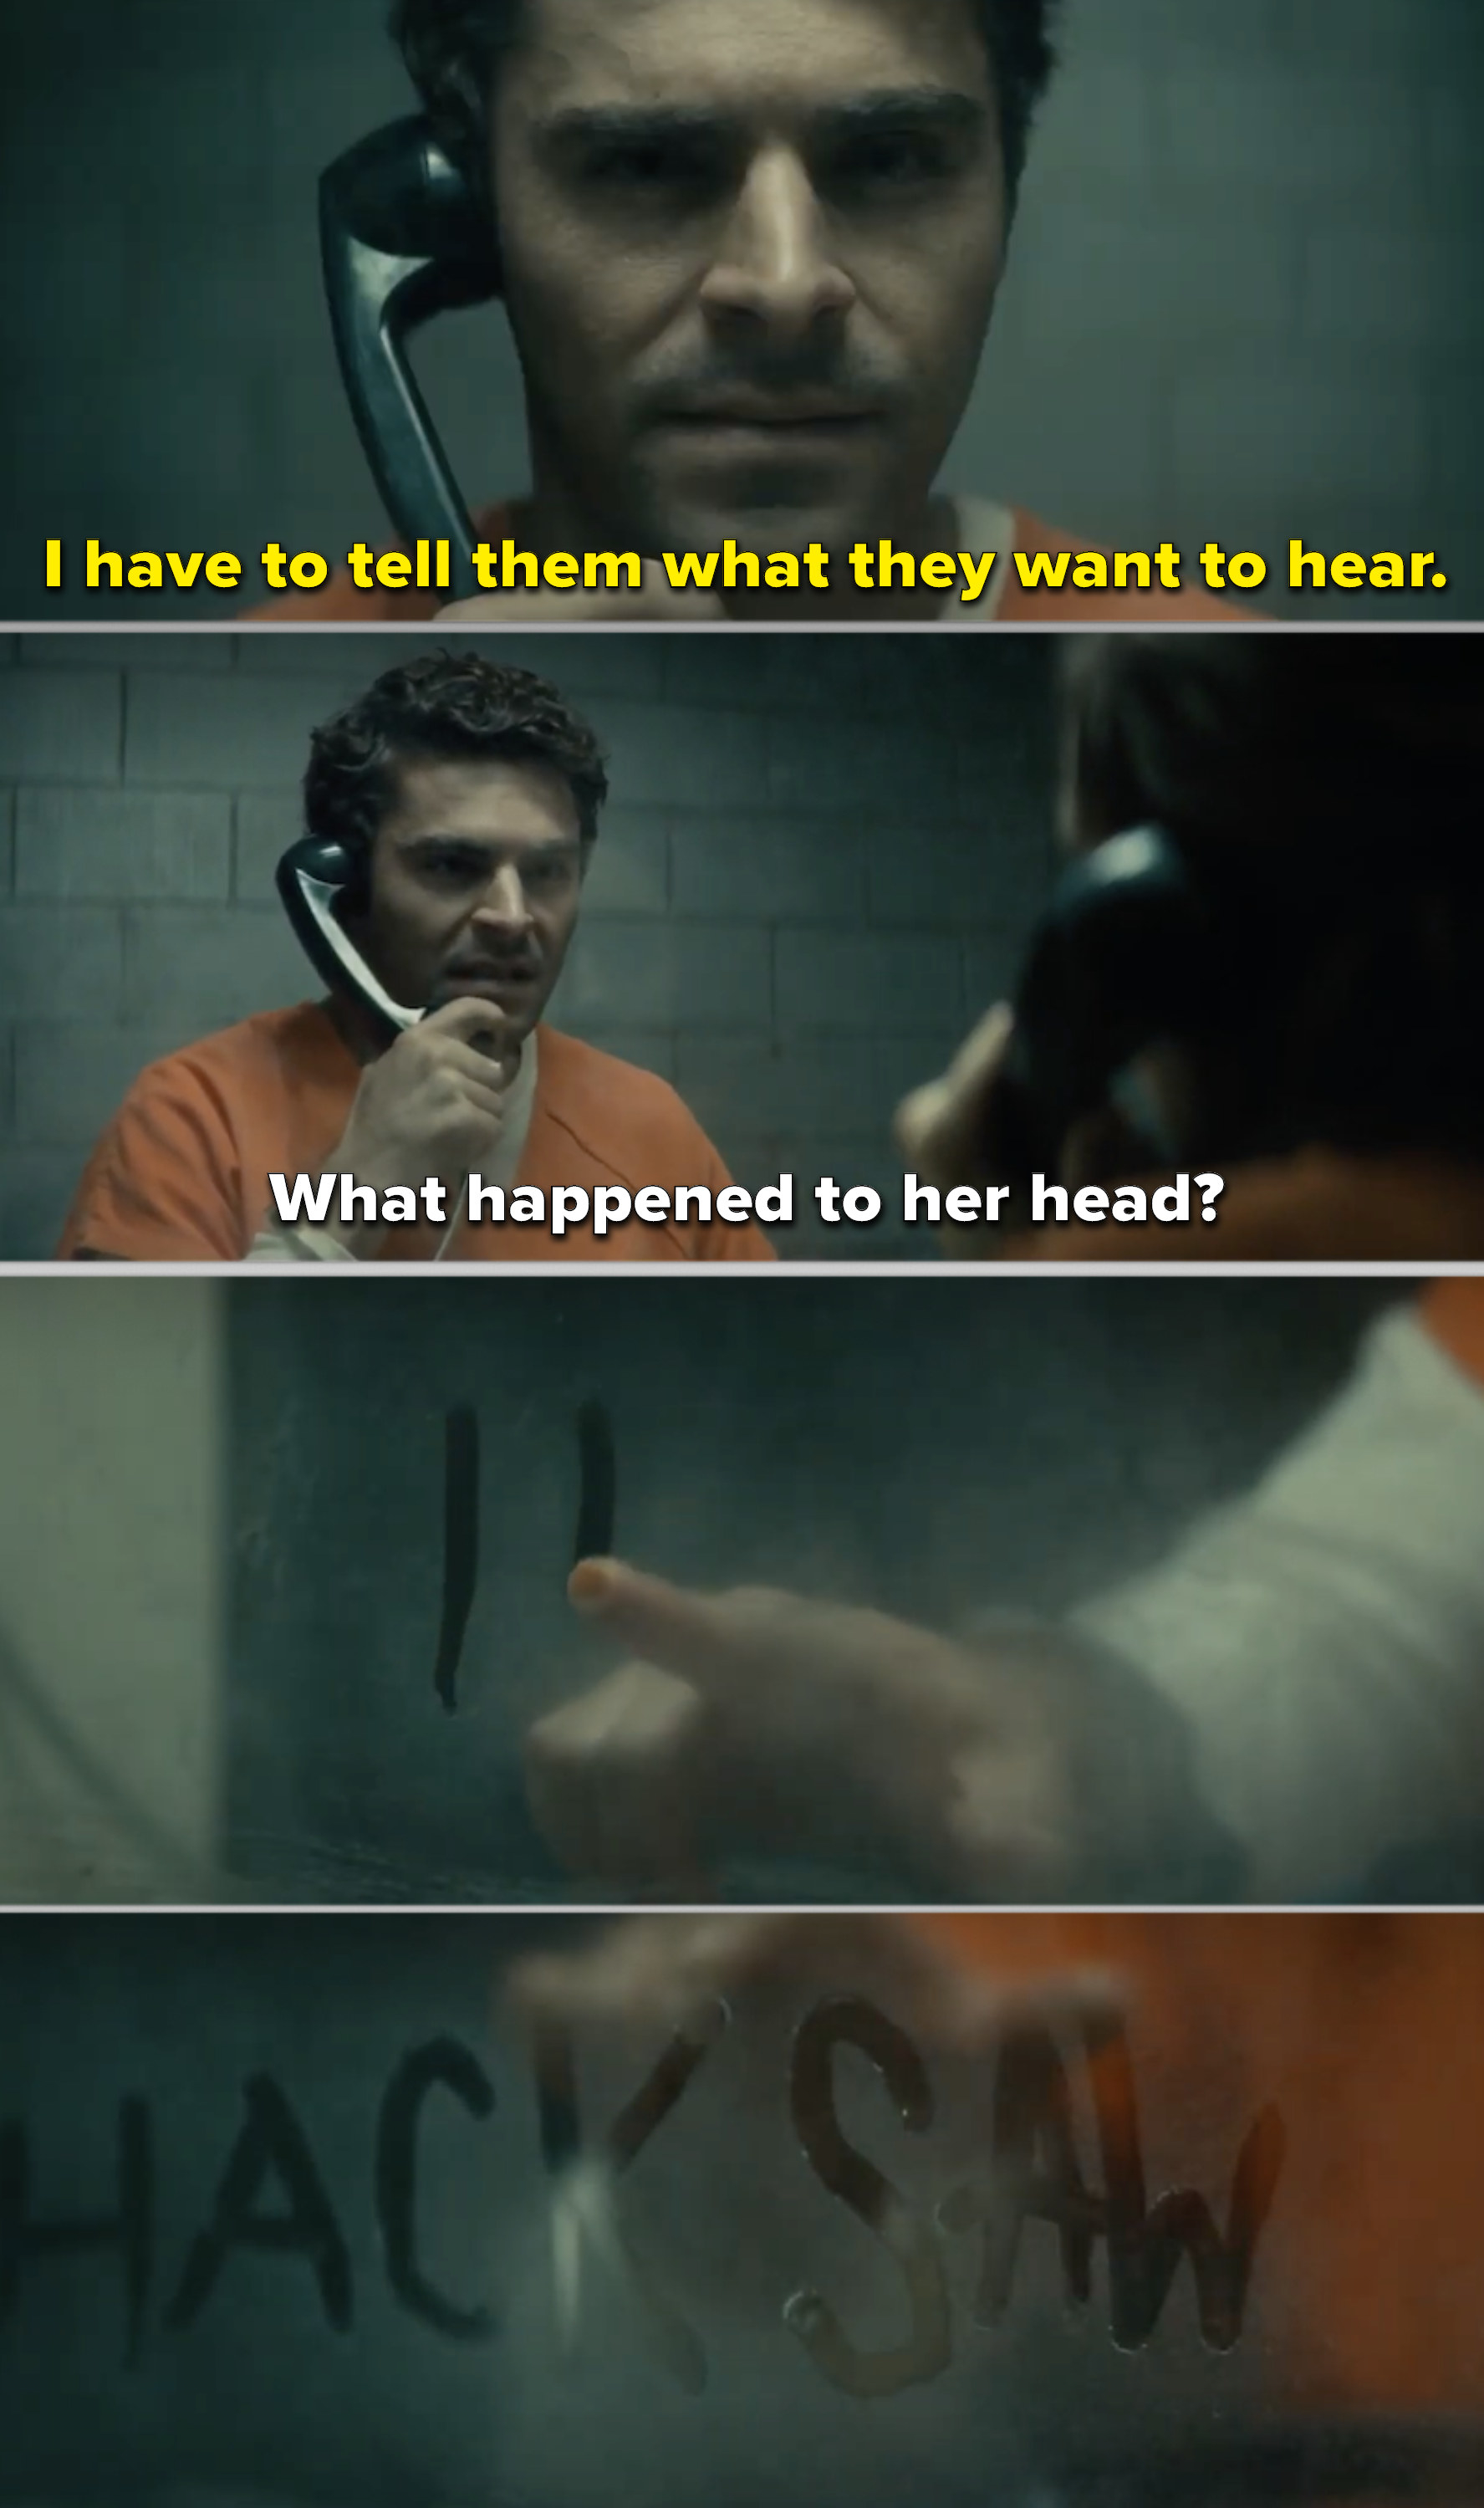 Zac Efron as Ted Bundy being confronted in prison in Extremely Wicked, Shockingly Evil and Vile